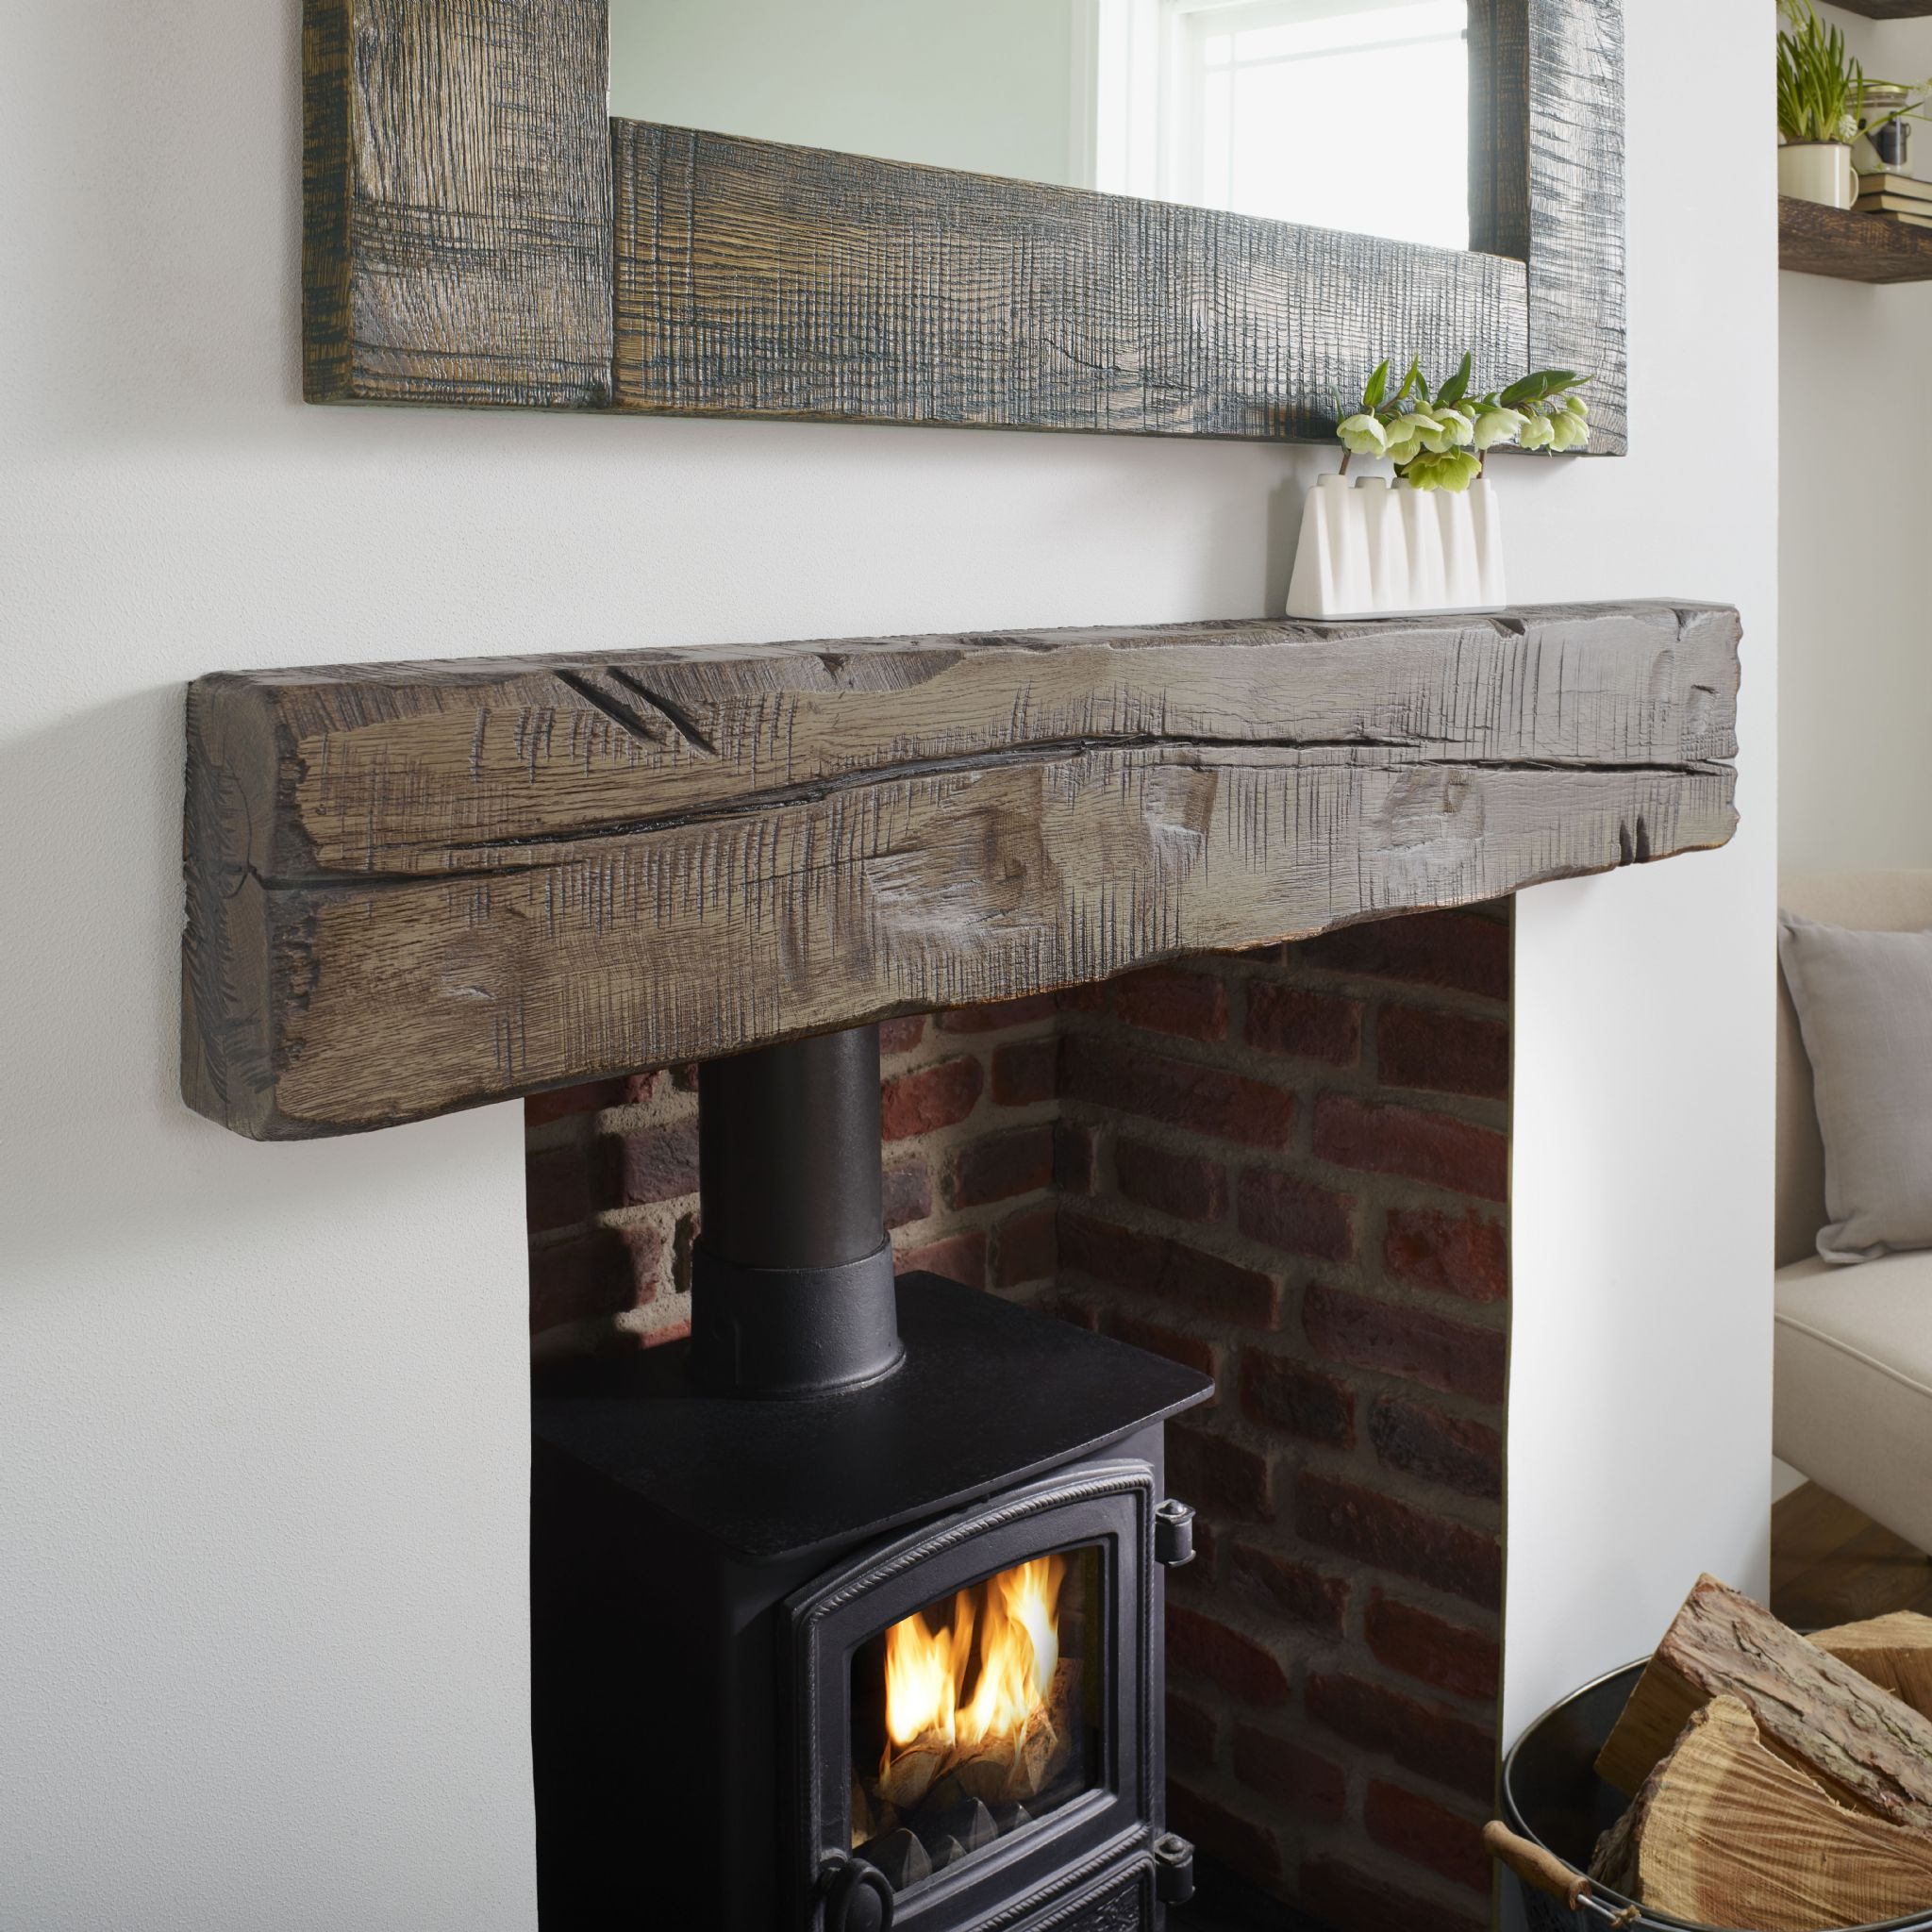 Oak Solid Mantel Reclaimed Character Rustic Shelf Beam mON8n0Pyvw